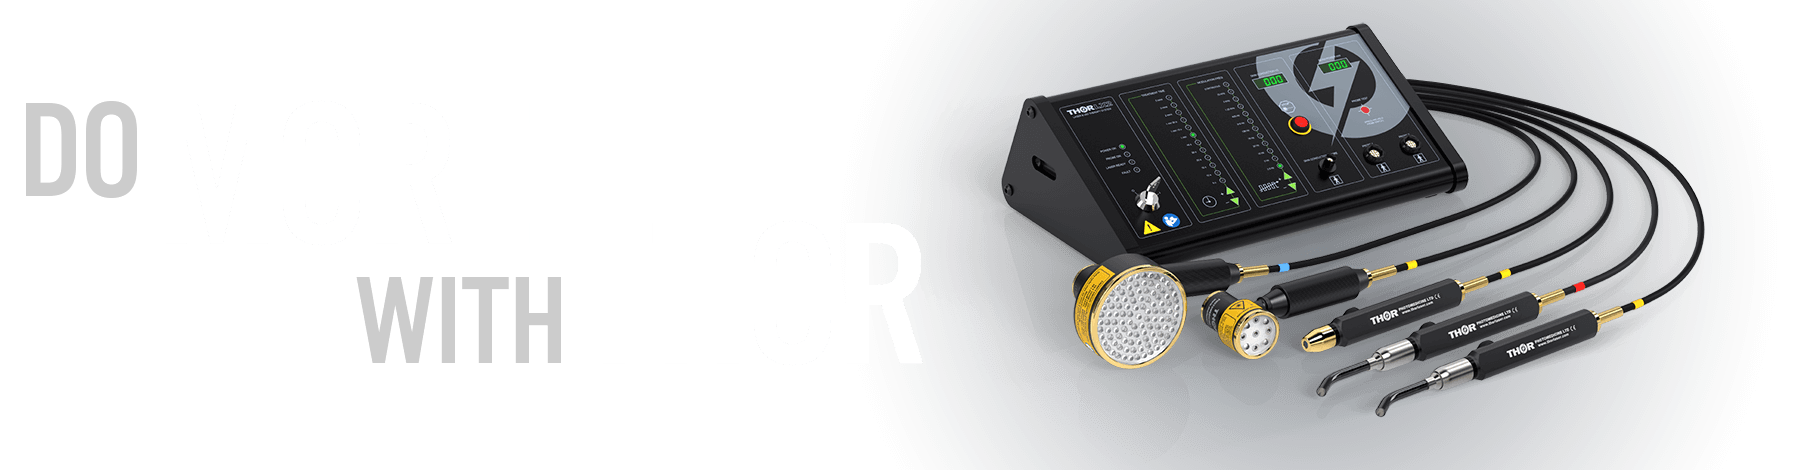 Do More With A THOR